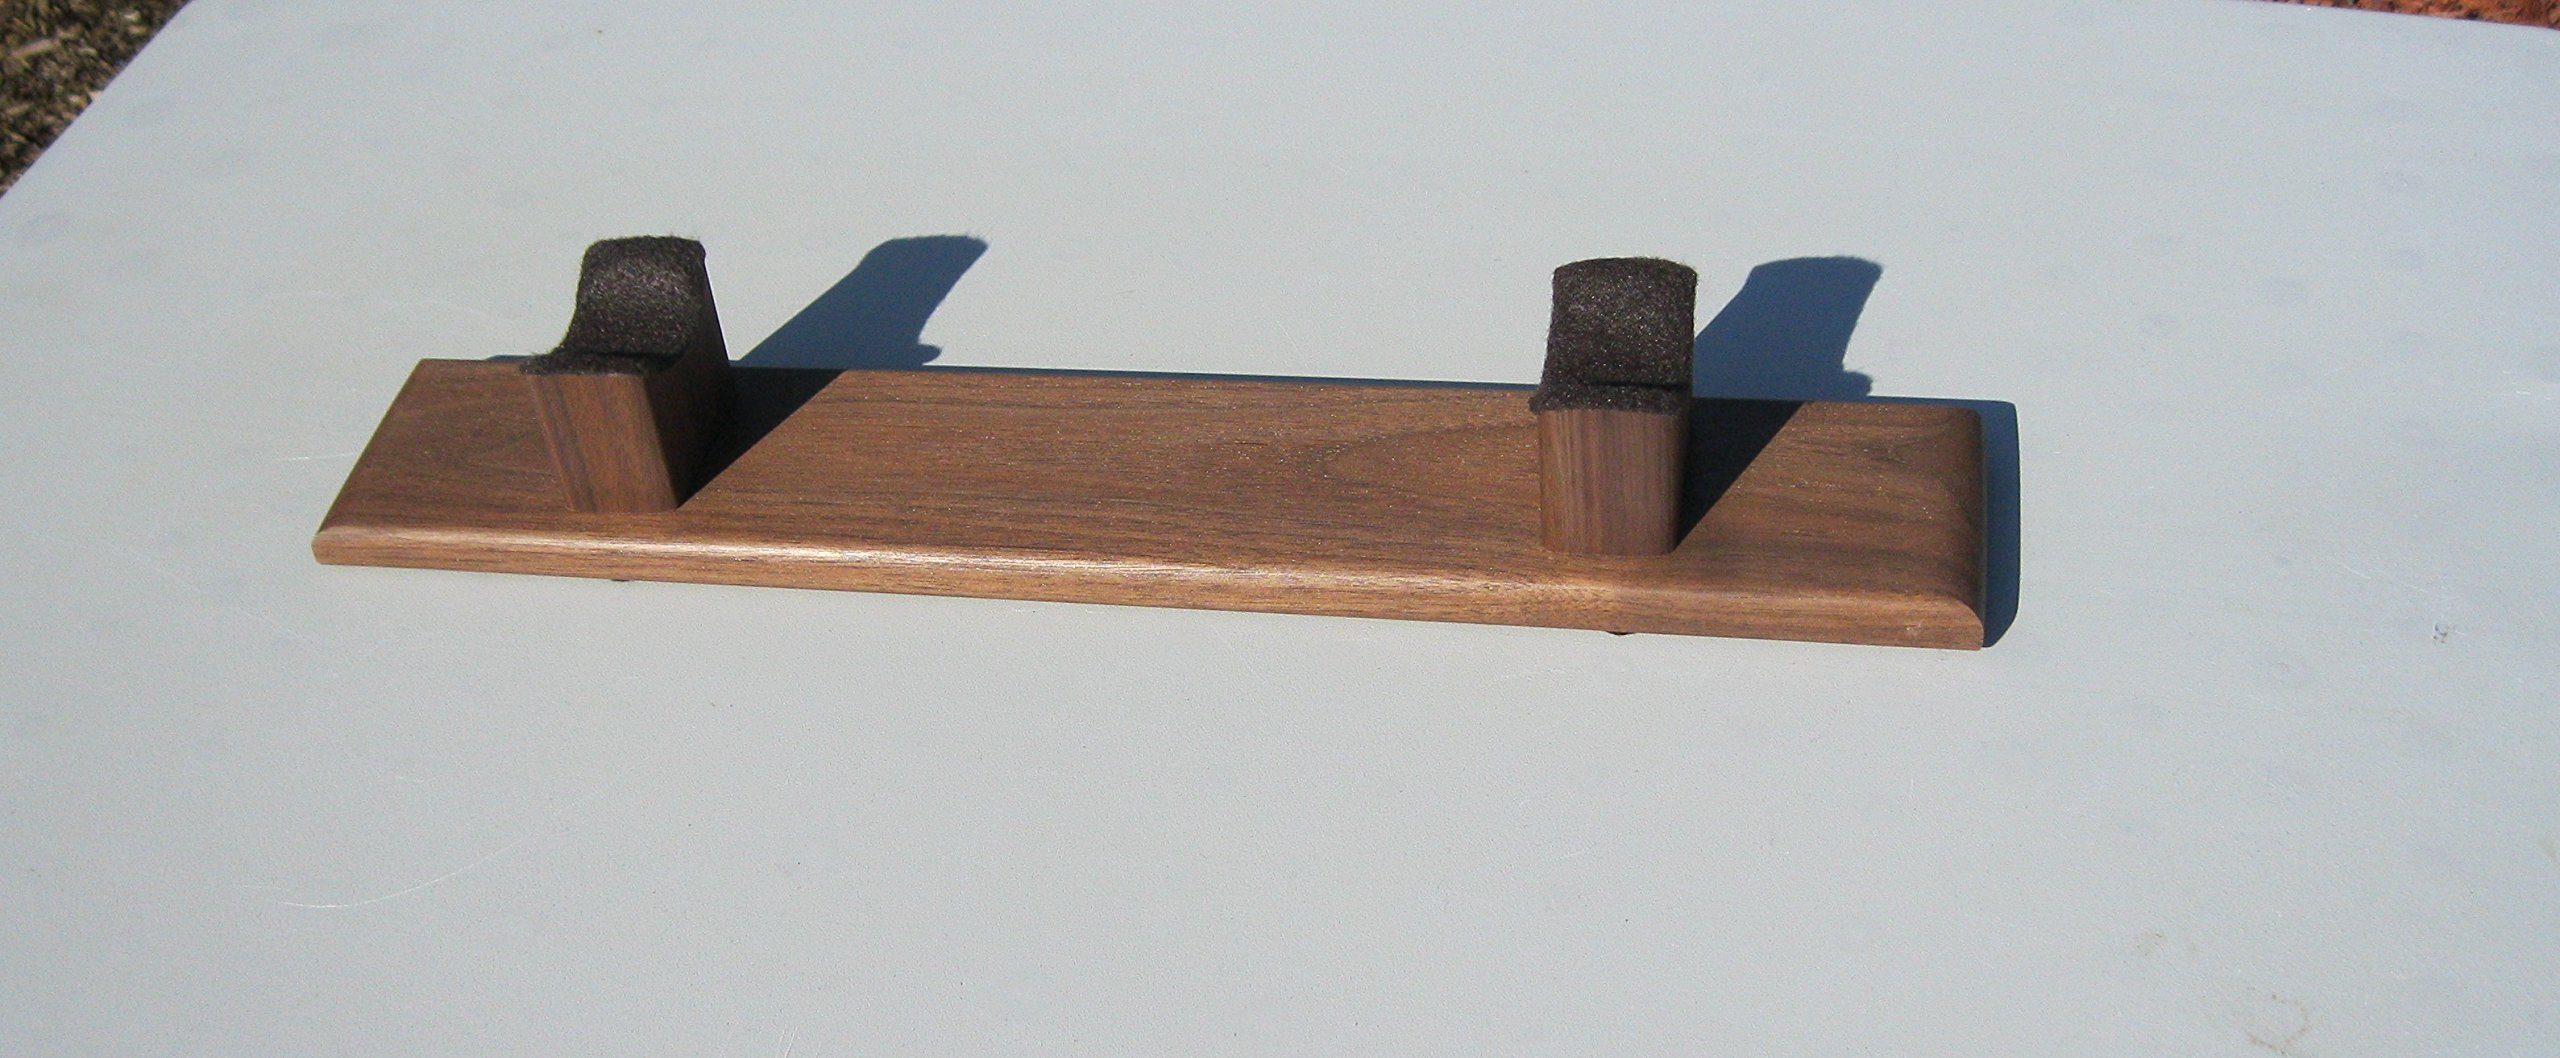 Native American Flute Stand - Hand Made - Made From Solid American Walnut - Hand Rubbed Finish